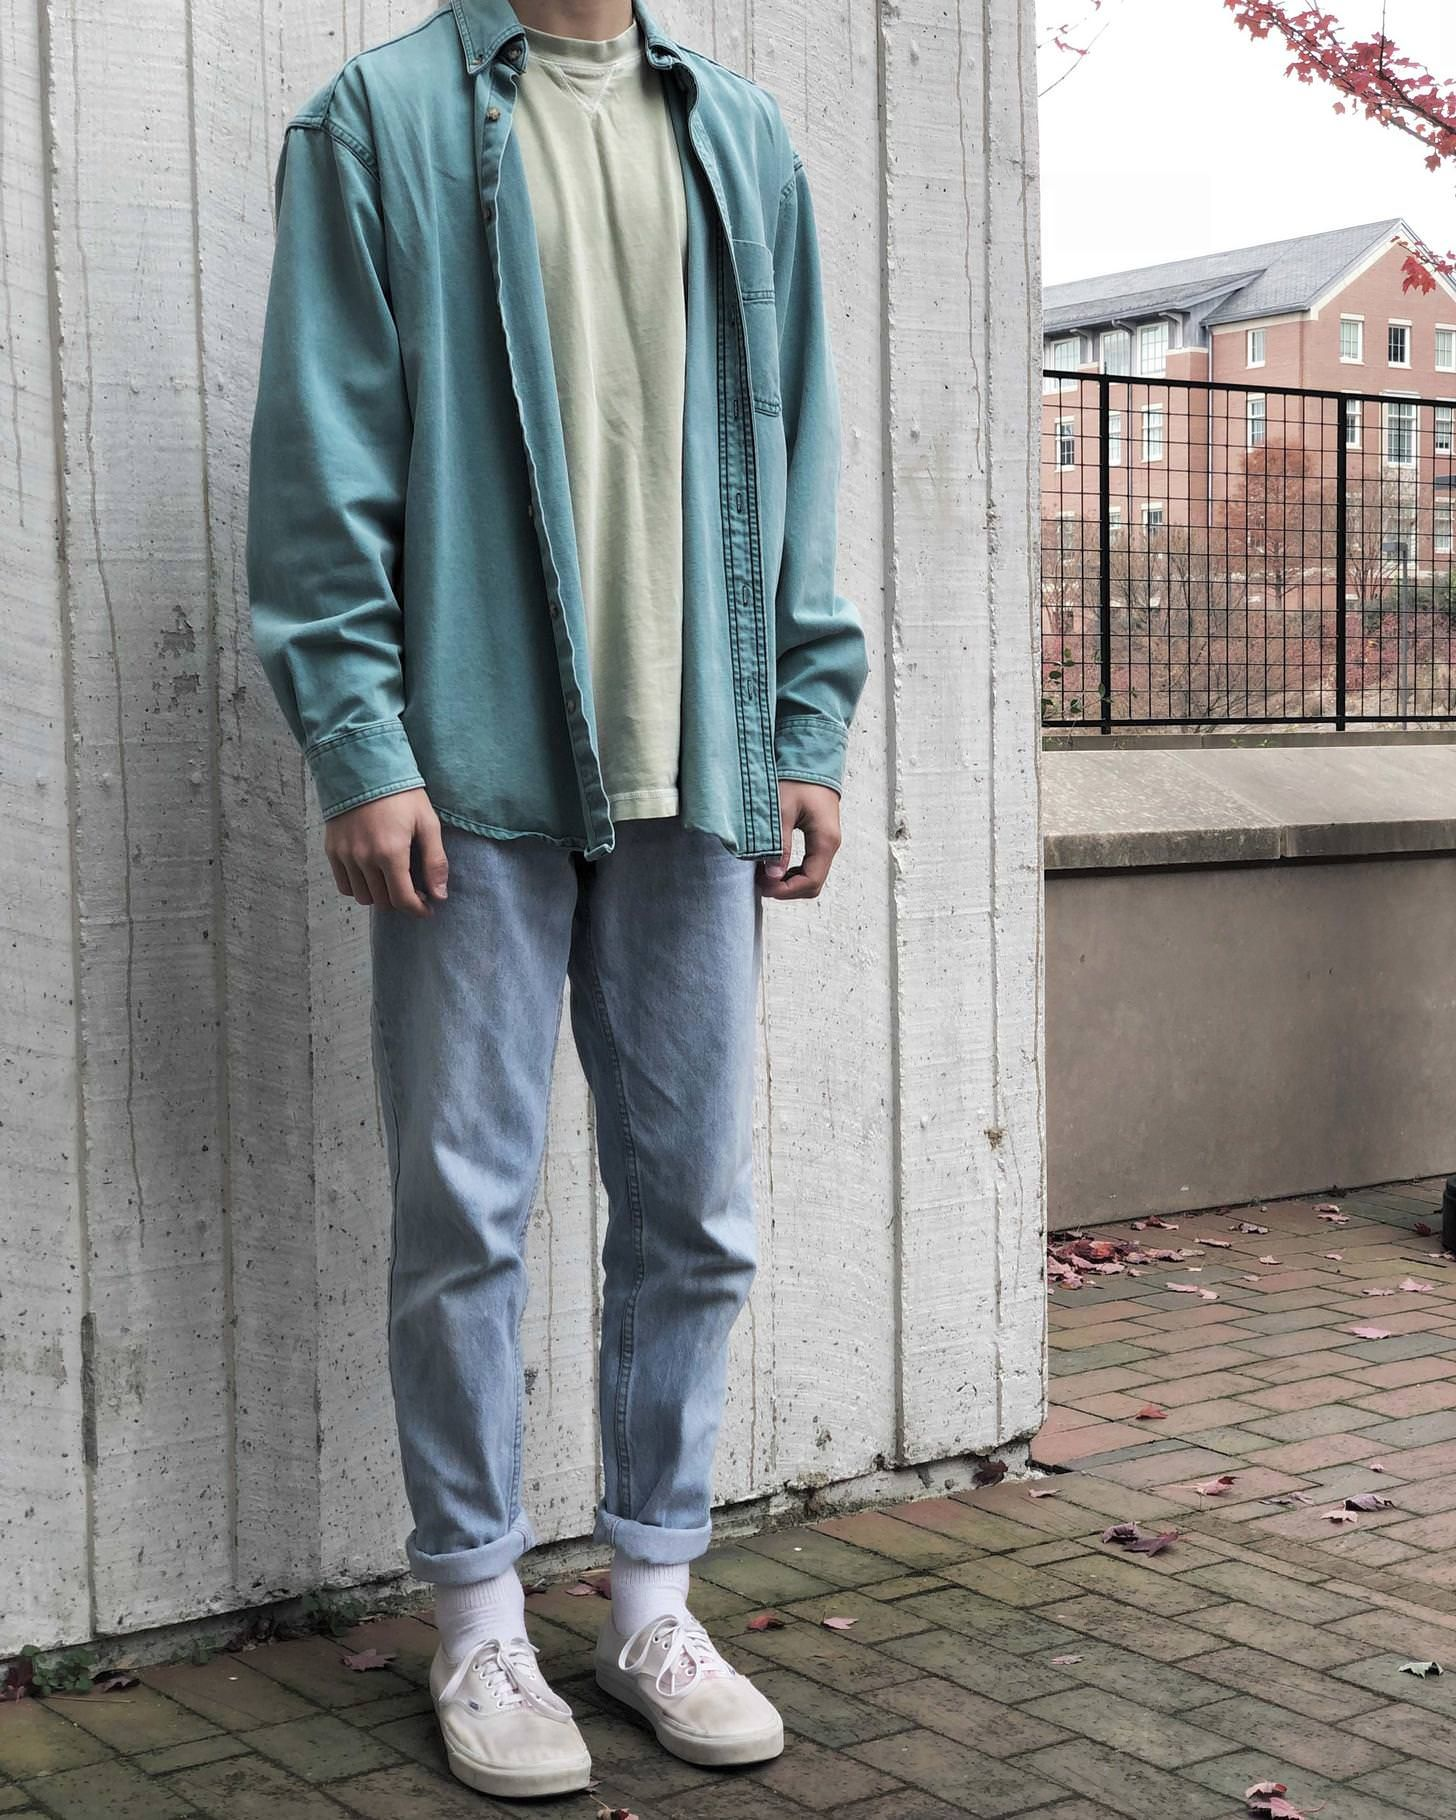 Top of WDYWT for 2018 April